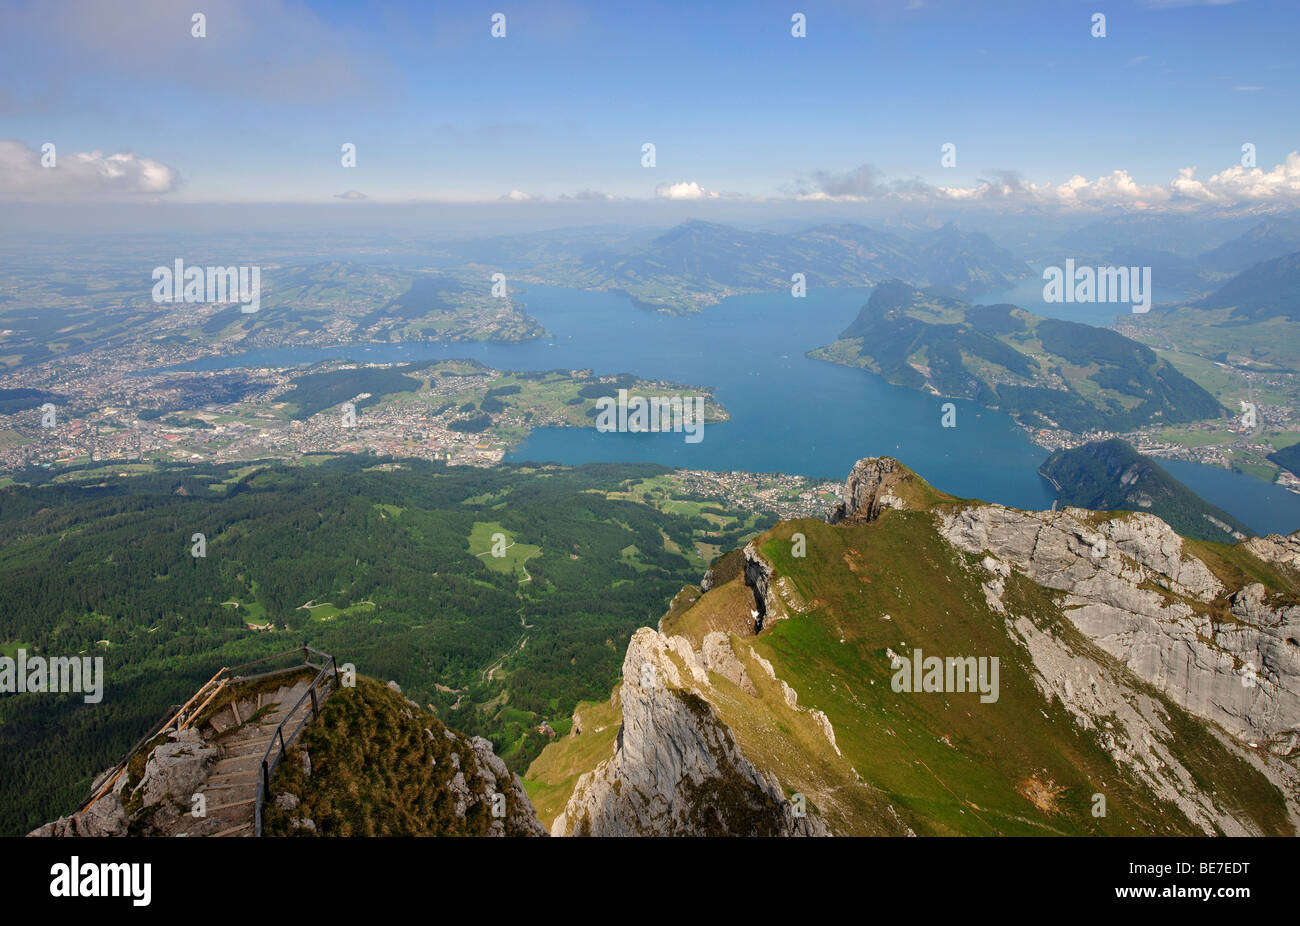 View from the summit of Mount Pilatus on Lake Lucerne and Lucerne, Switzerland, Europe - Stock Image